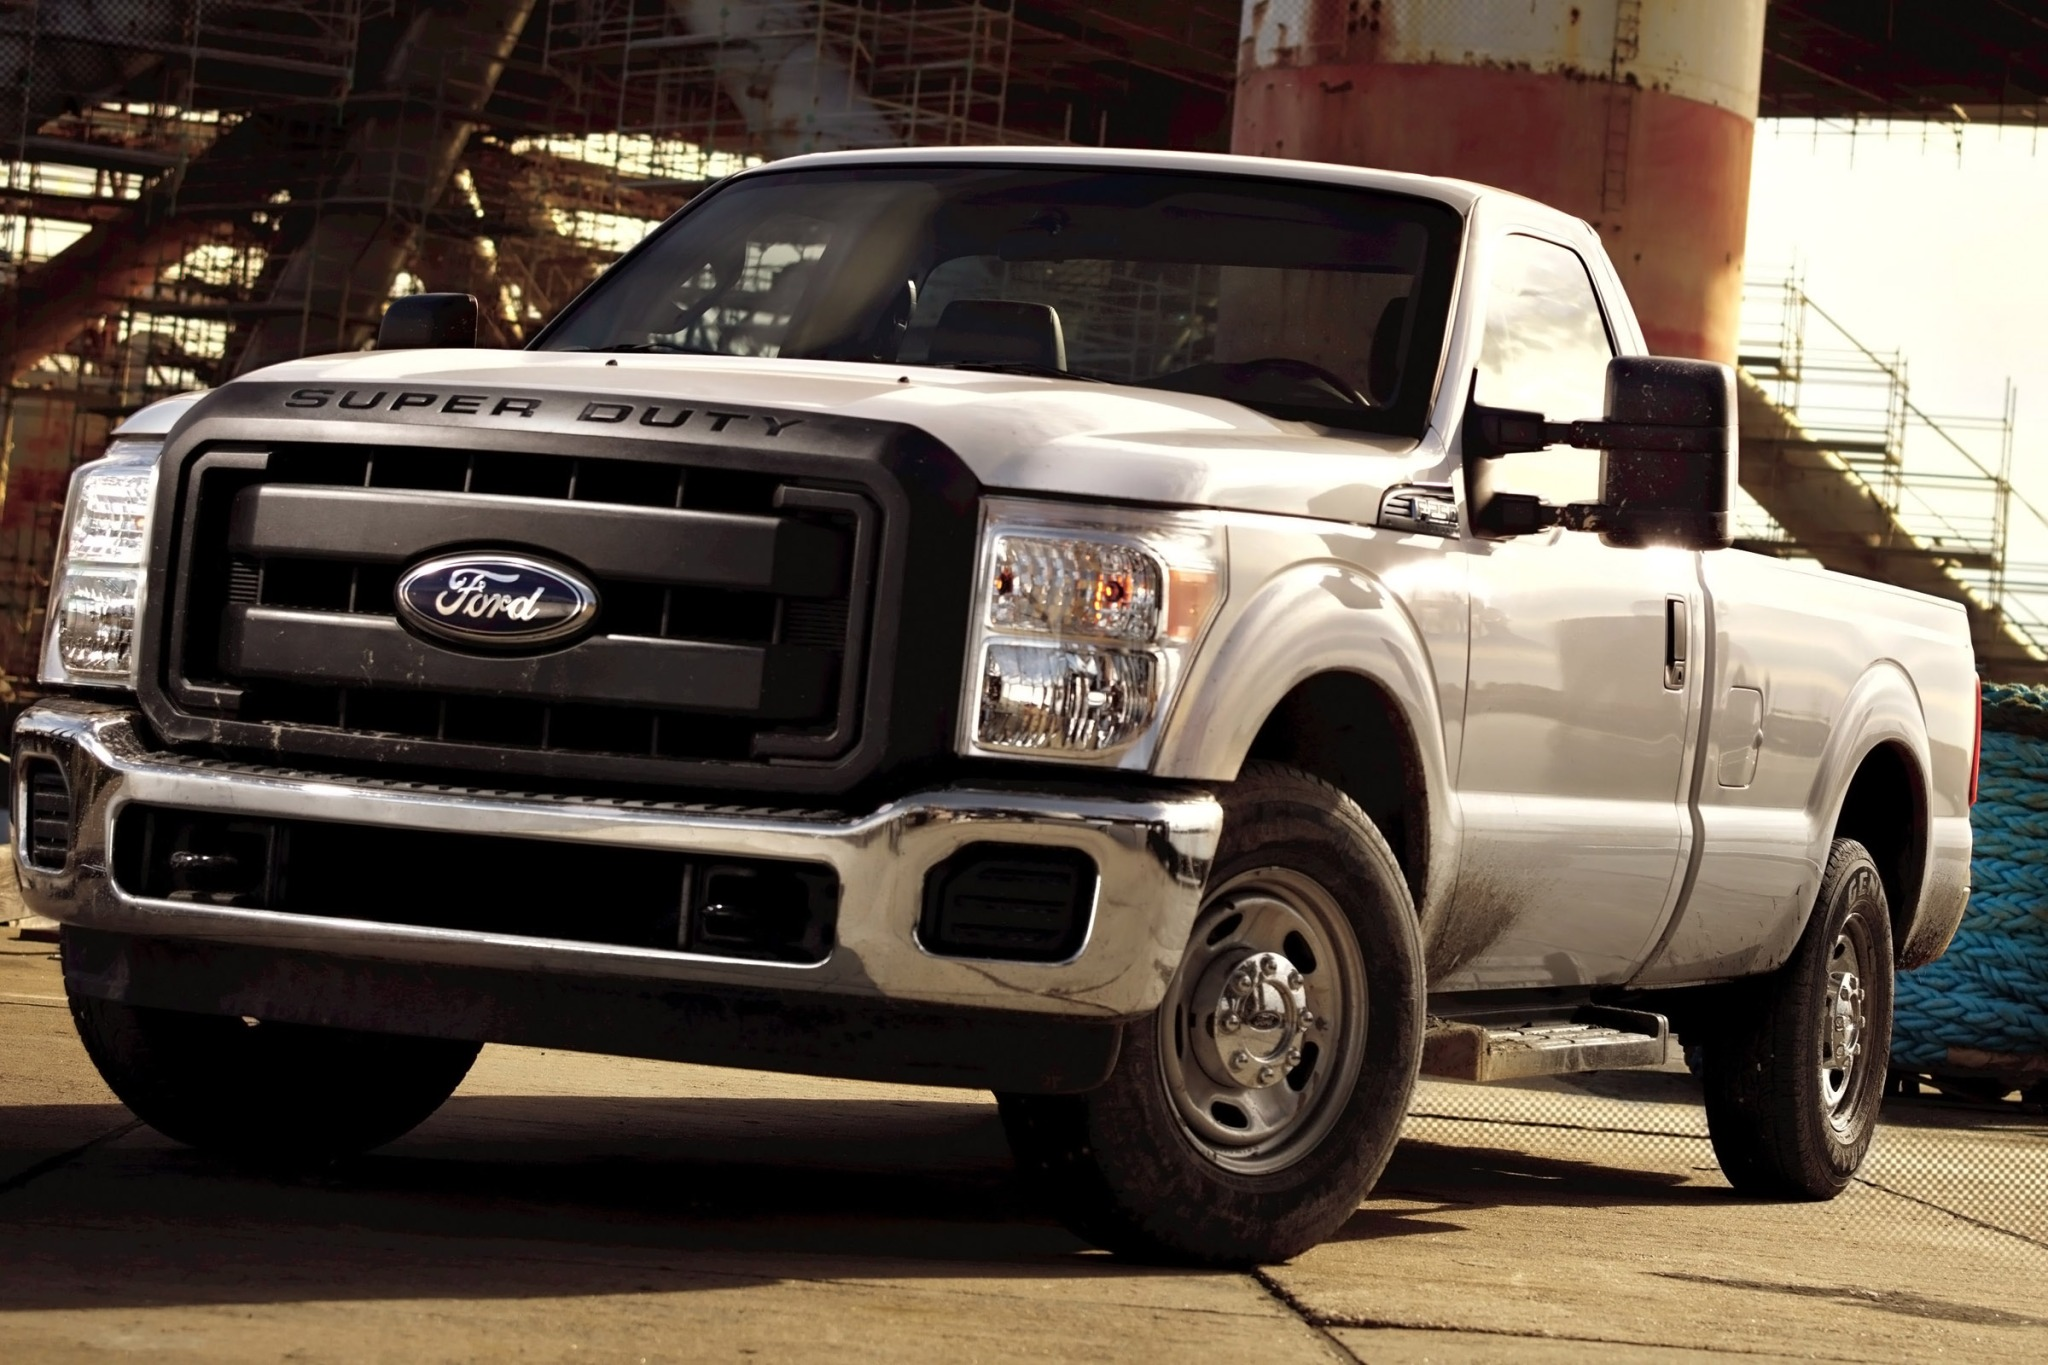 2014 Ford F-250 Super Dut interior #5